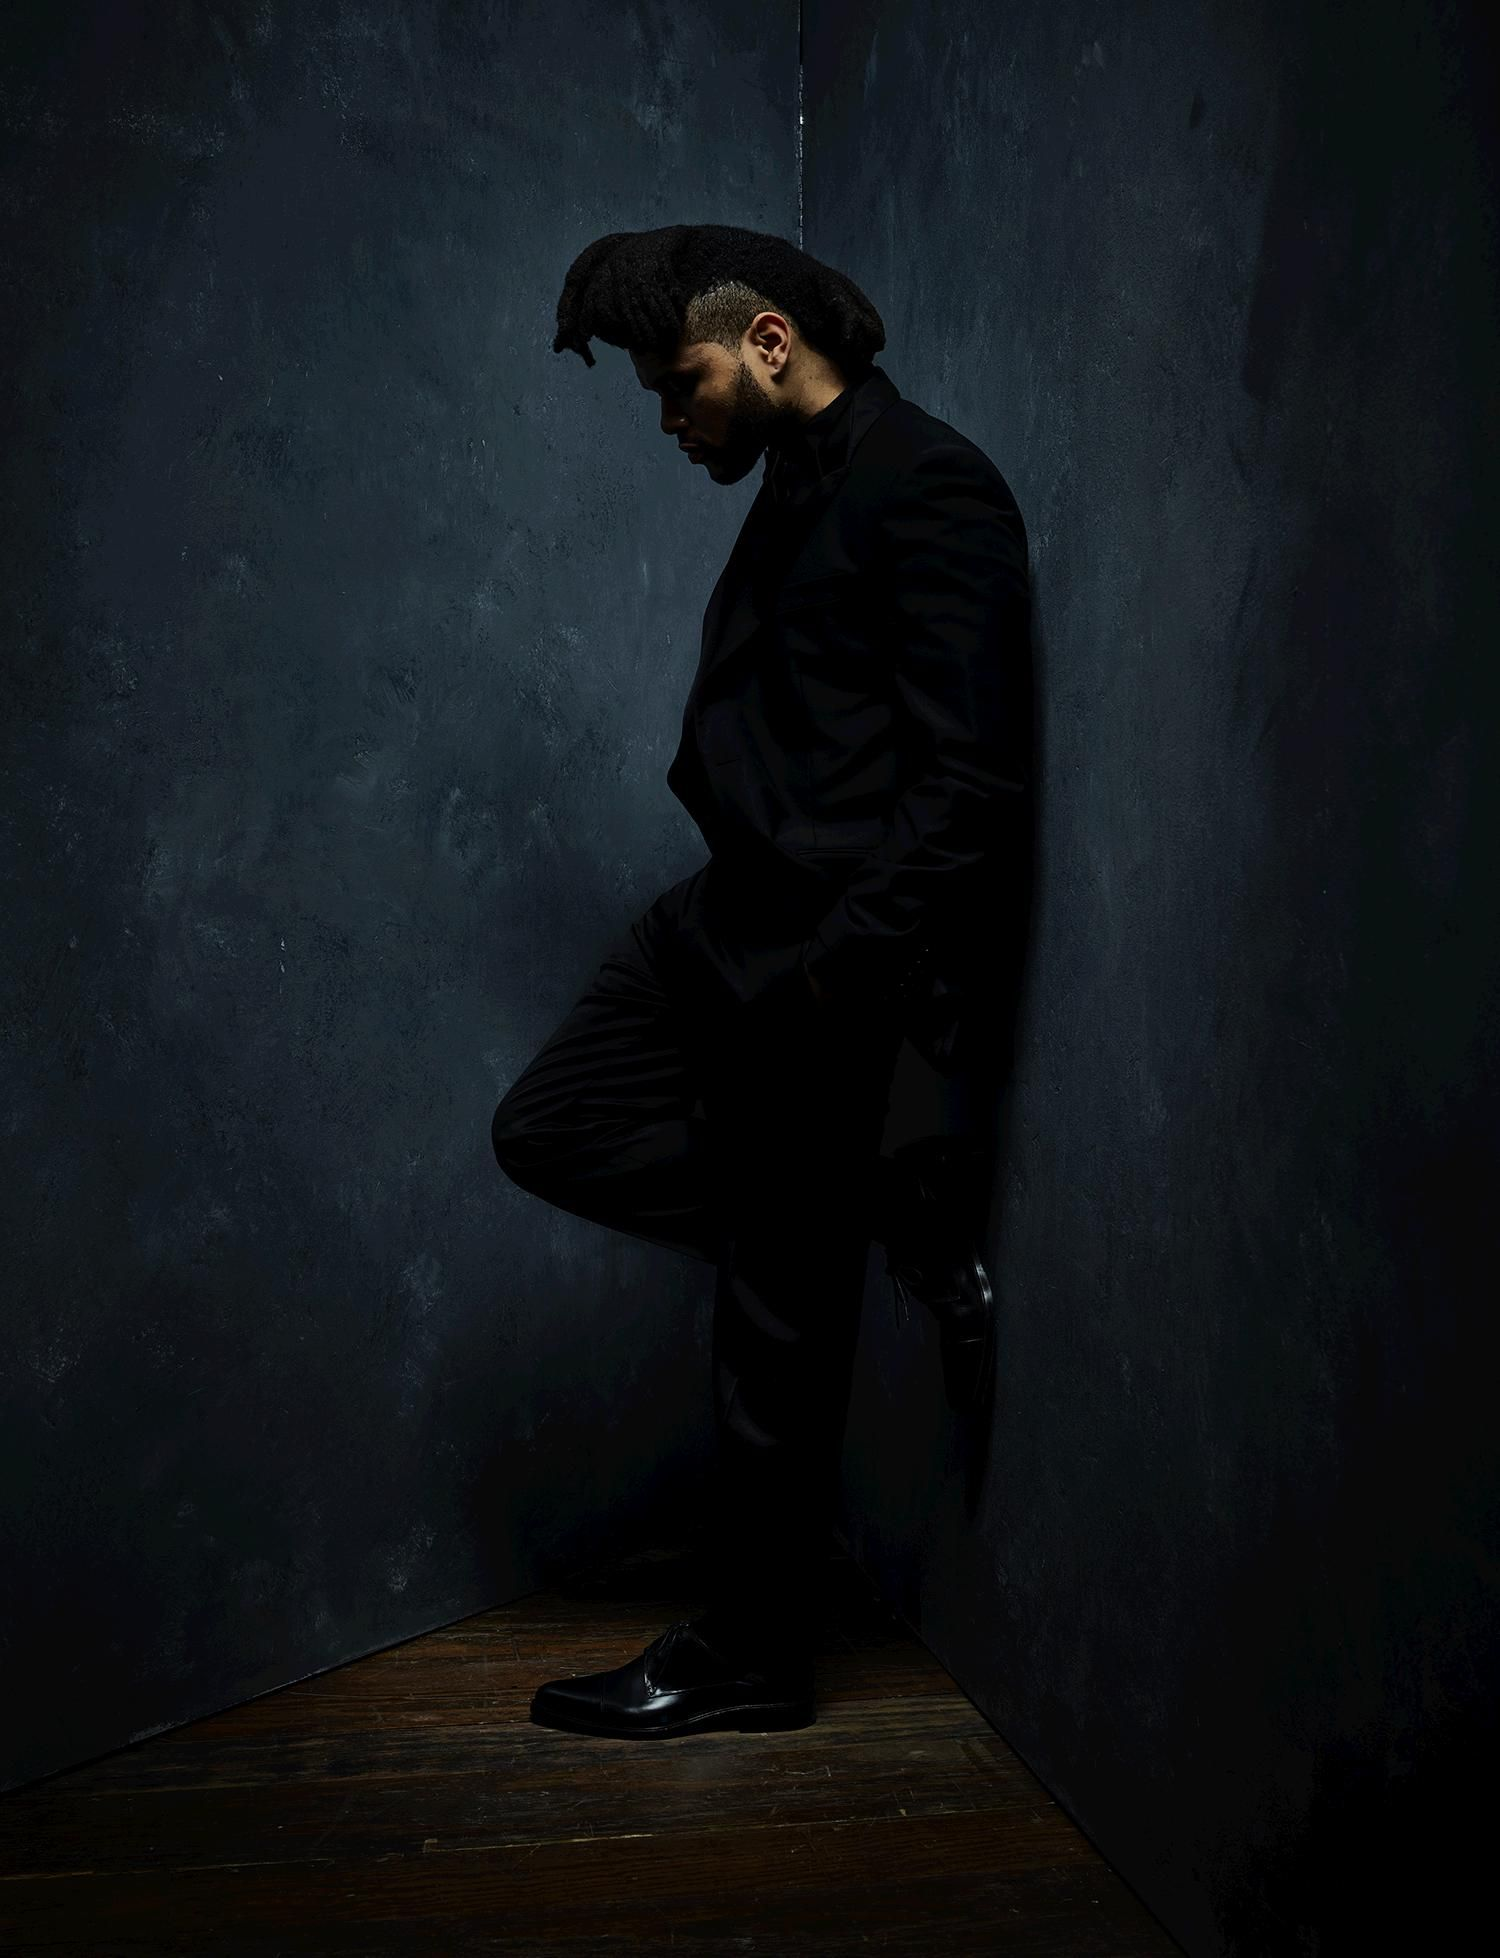 GRAMMY winner The Weeknd photographed by Danny Clinch backstage at